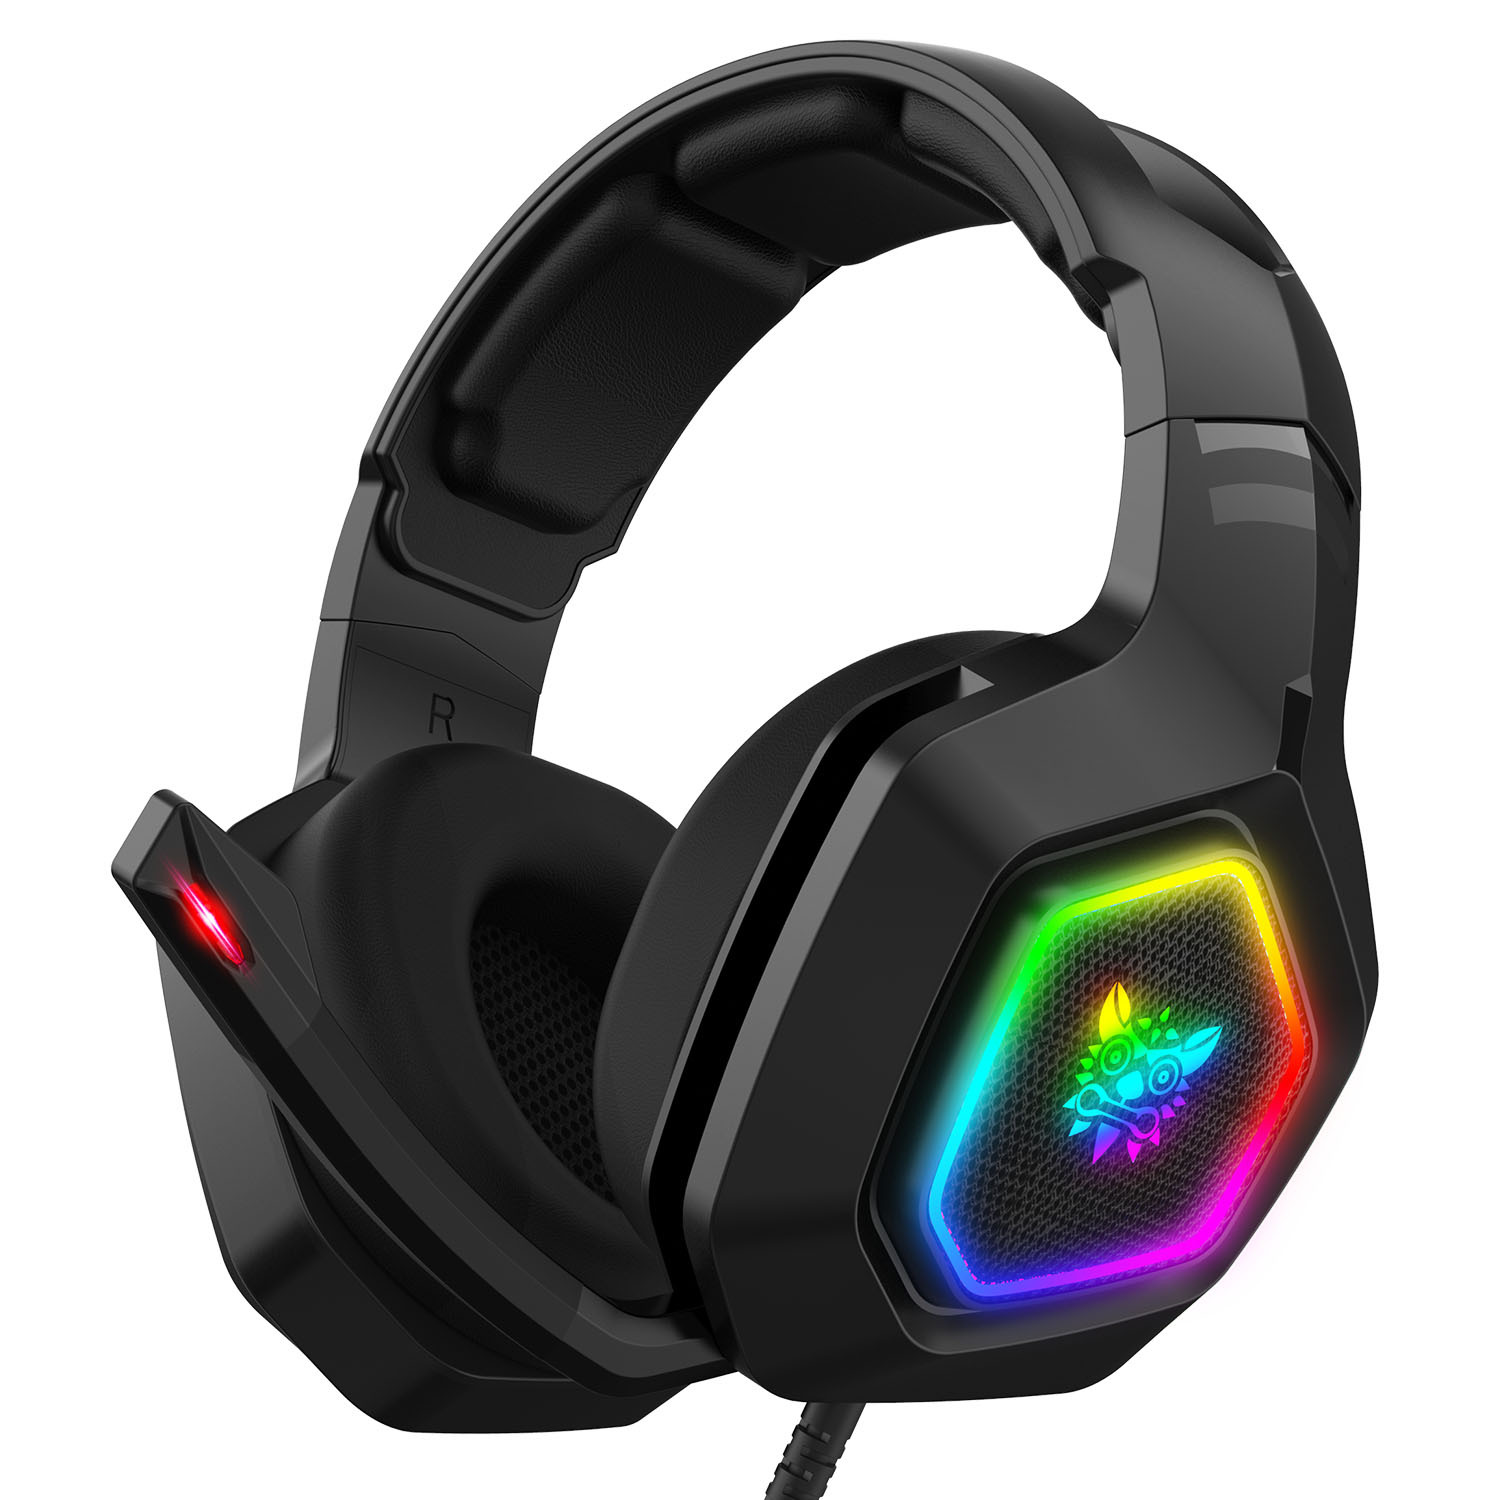 Cross-border Spot 3.5mm with Microphone Best Gaming Headset 2020 Gaming  Gaming Headset Internet Caf PS4 RGB Light Emitting Headset Sale, Price &  Reviews   Gearbest